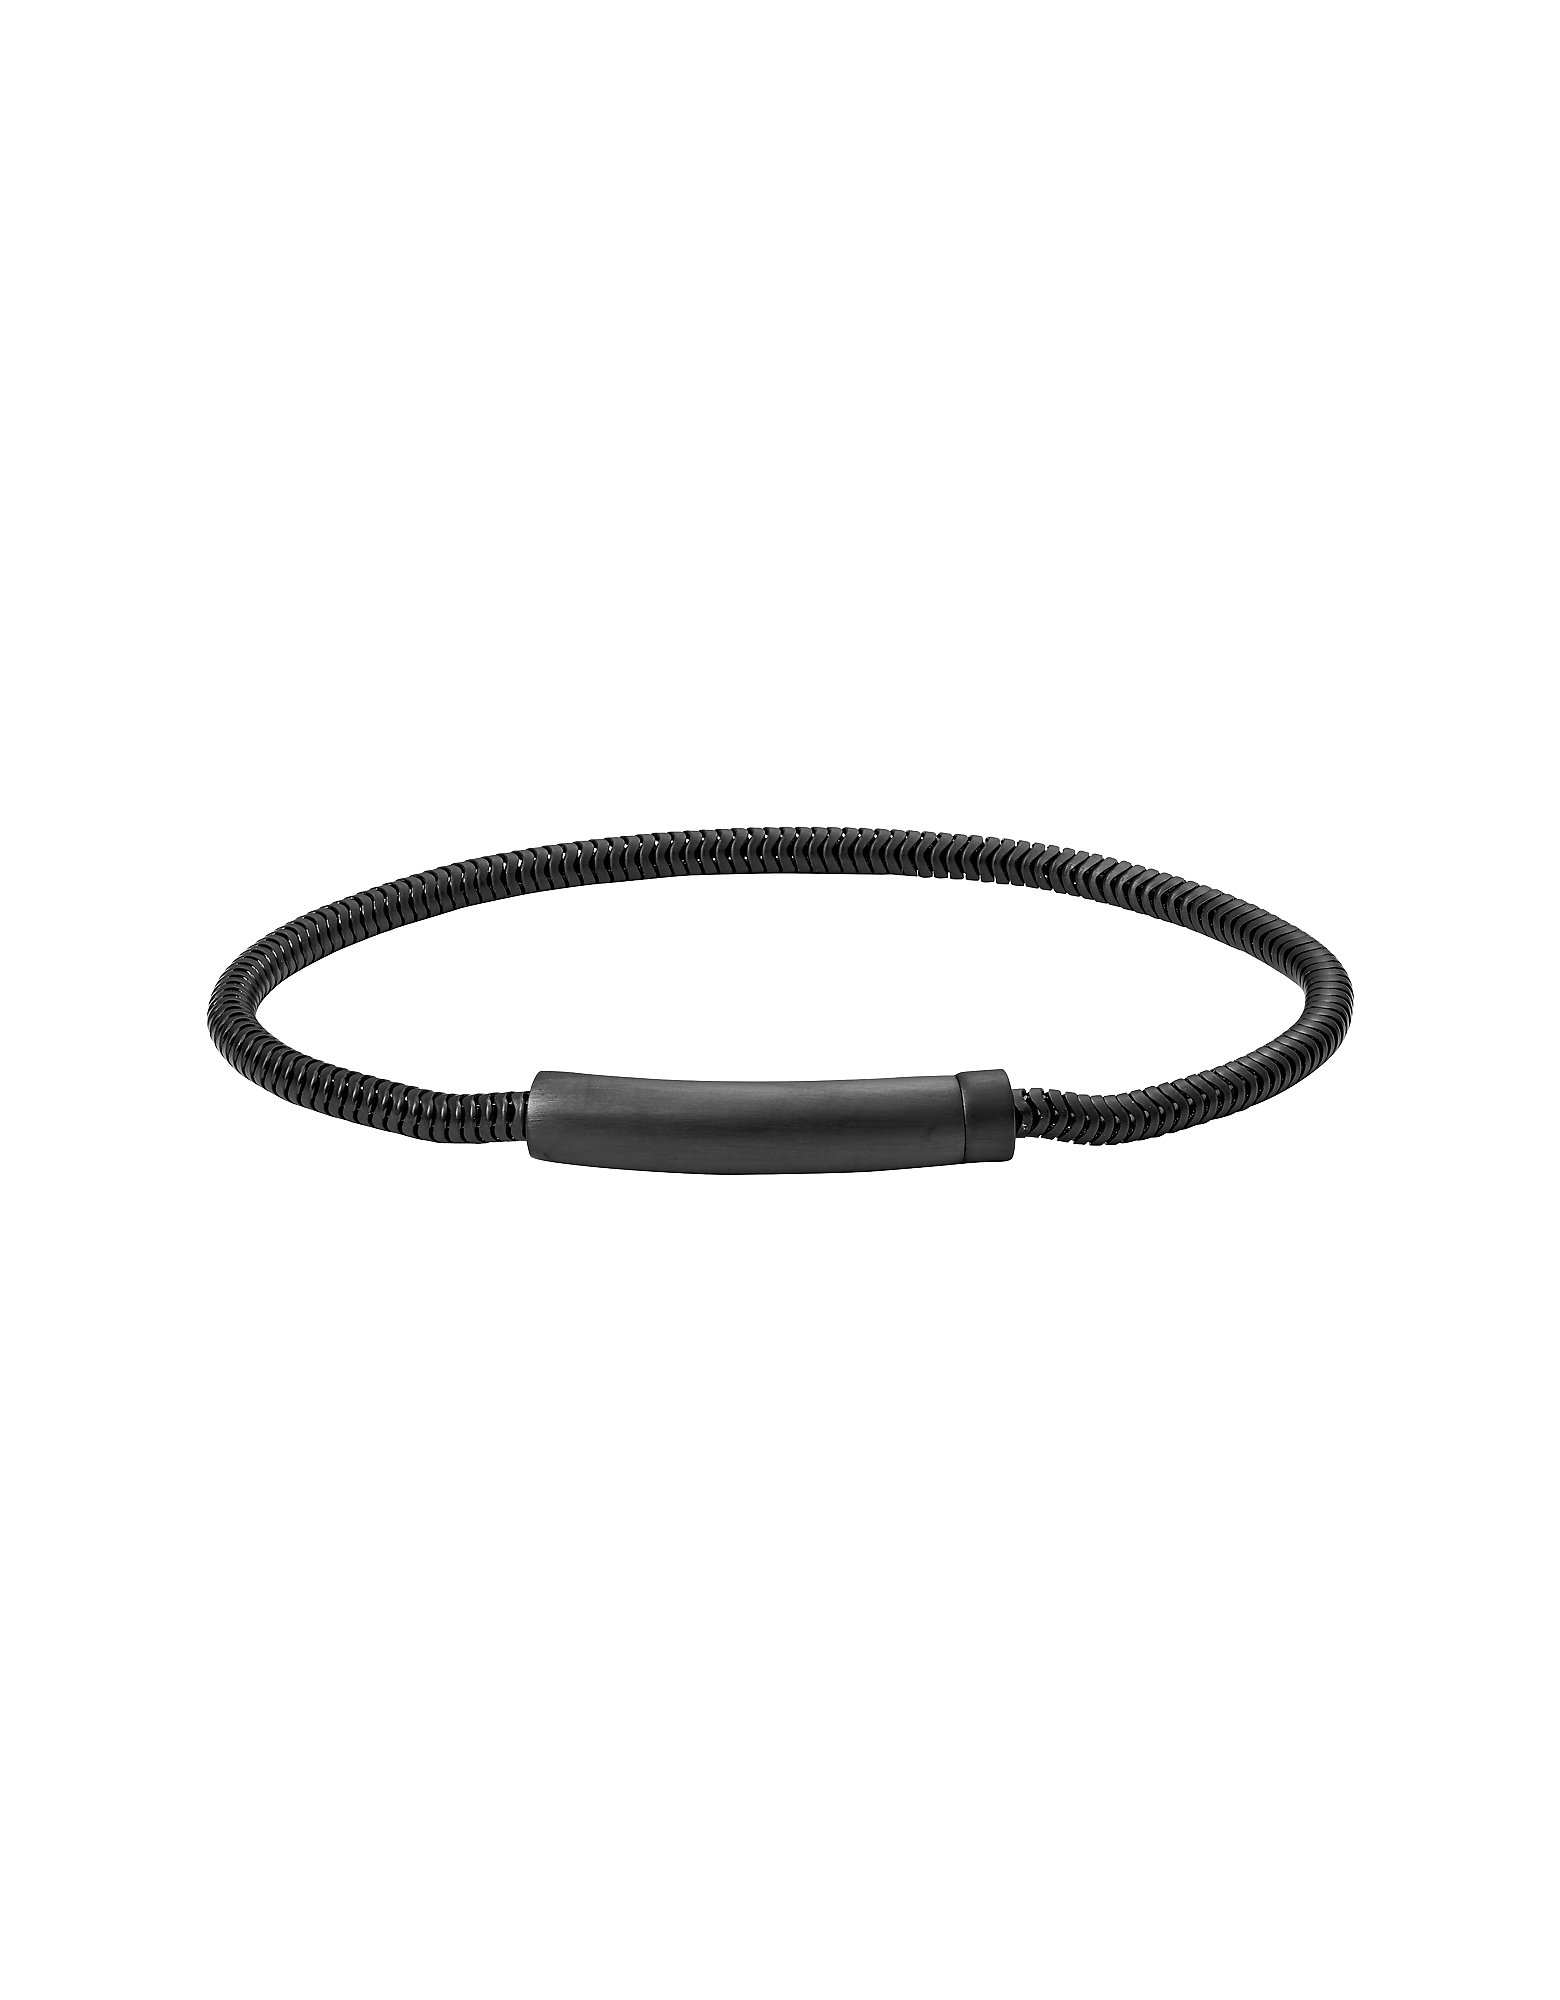 Snake Chain Black Stainless Steel Men's Bracelet